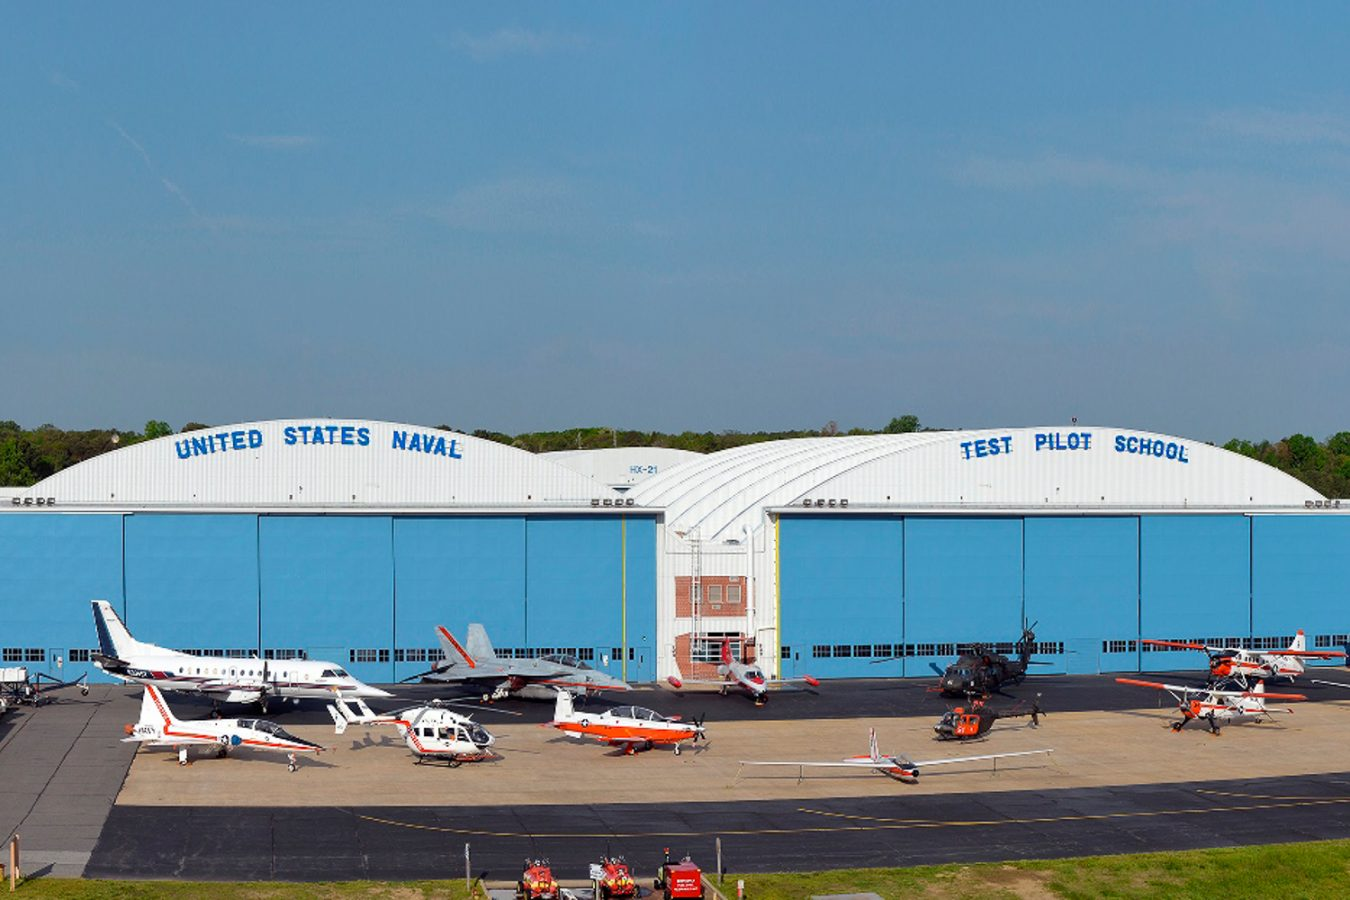 Photo of the US Navy Test Pilot School hangars at NAS Patuxent River, Maryland.